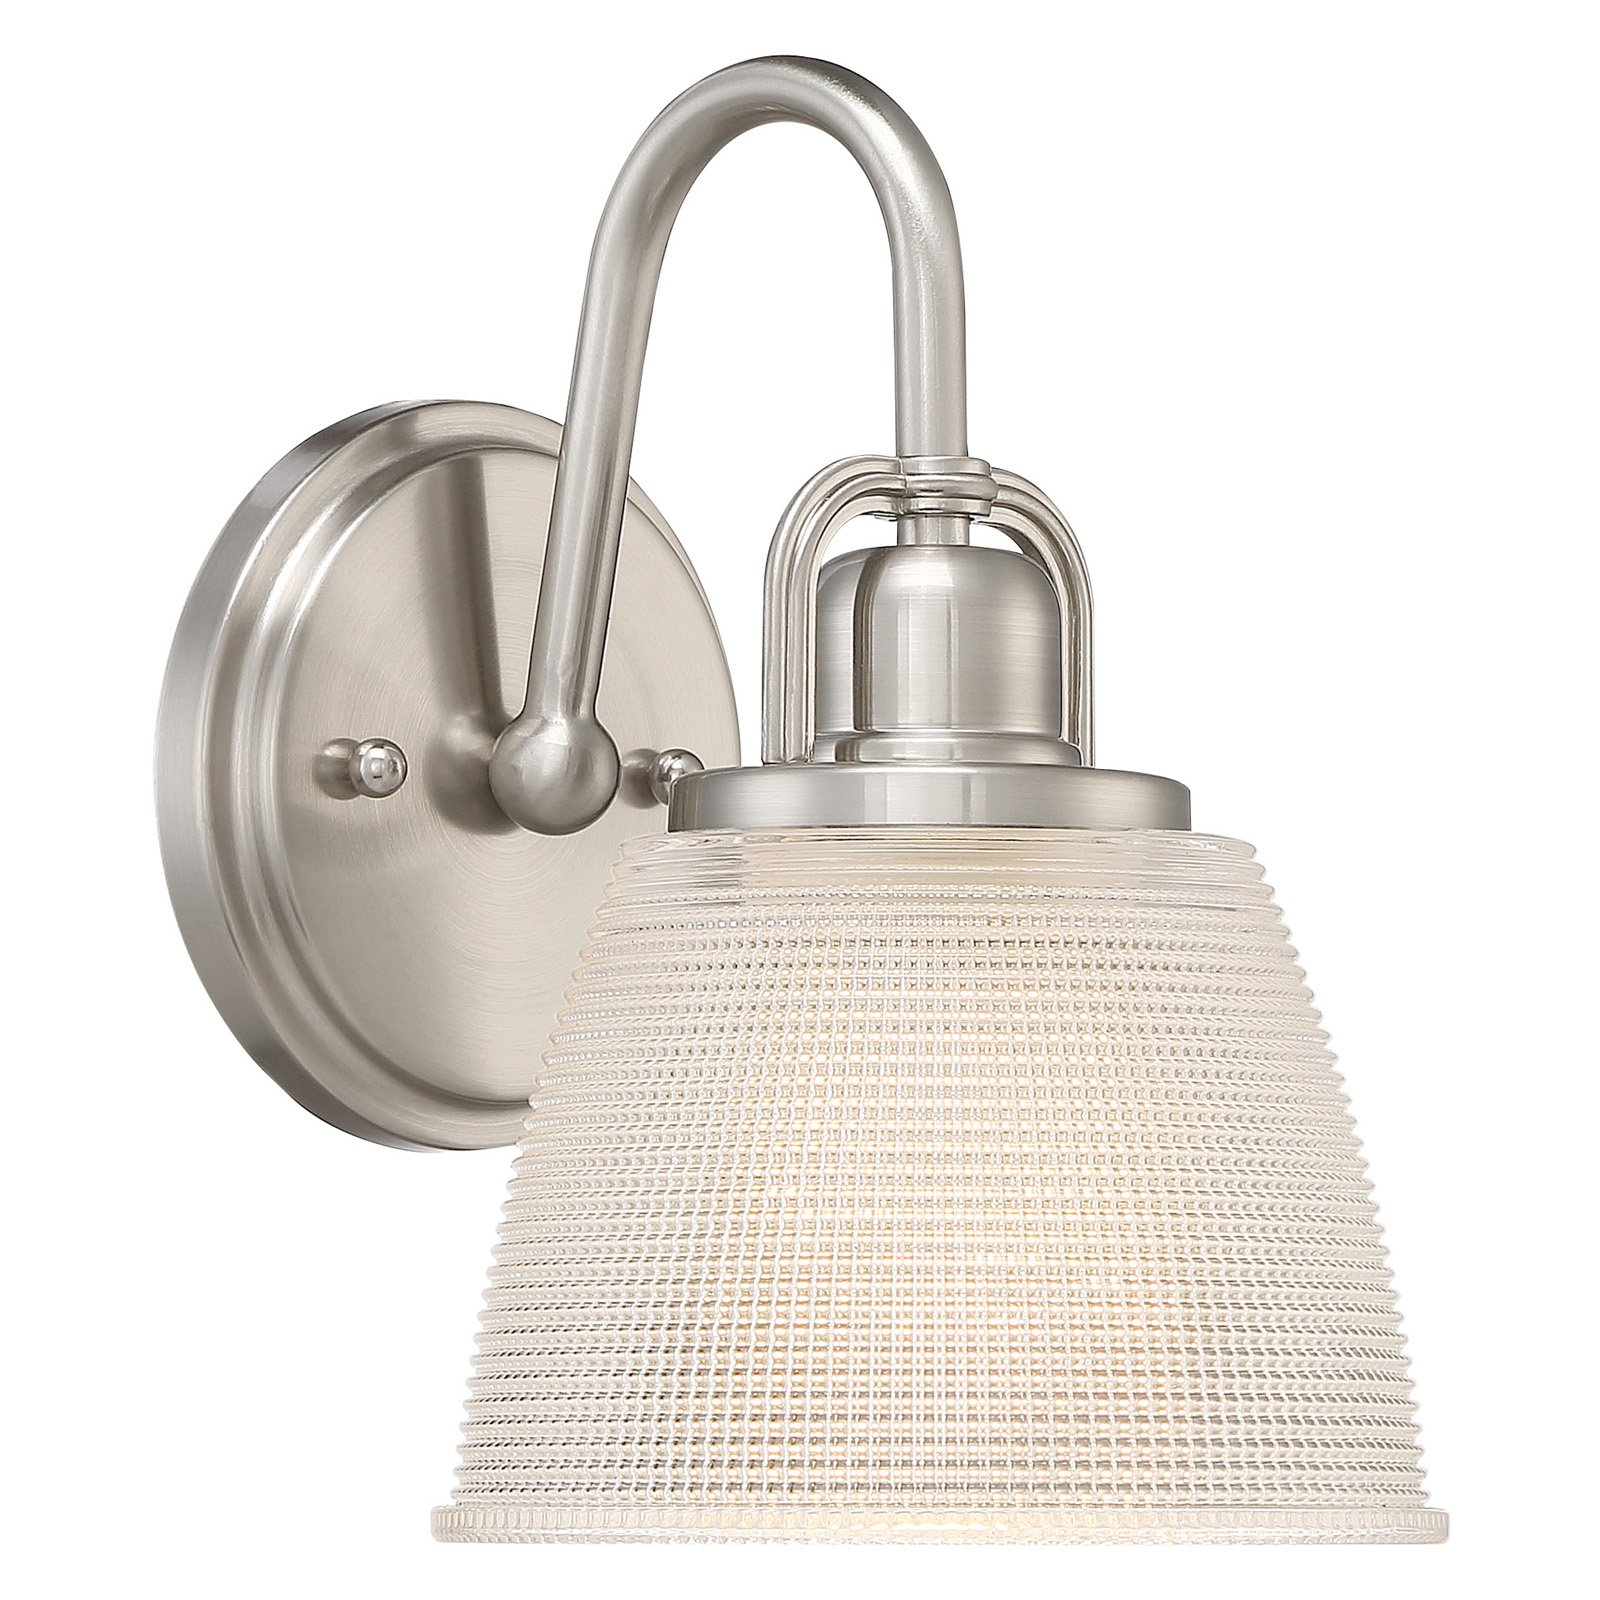 Quoizel Dublin DBN8701 Outdoor Wall Sconce